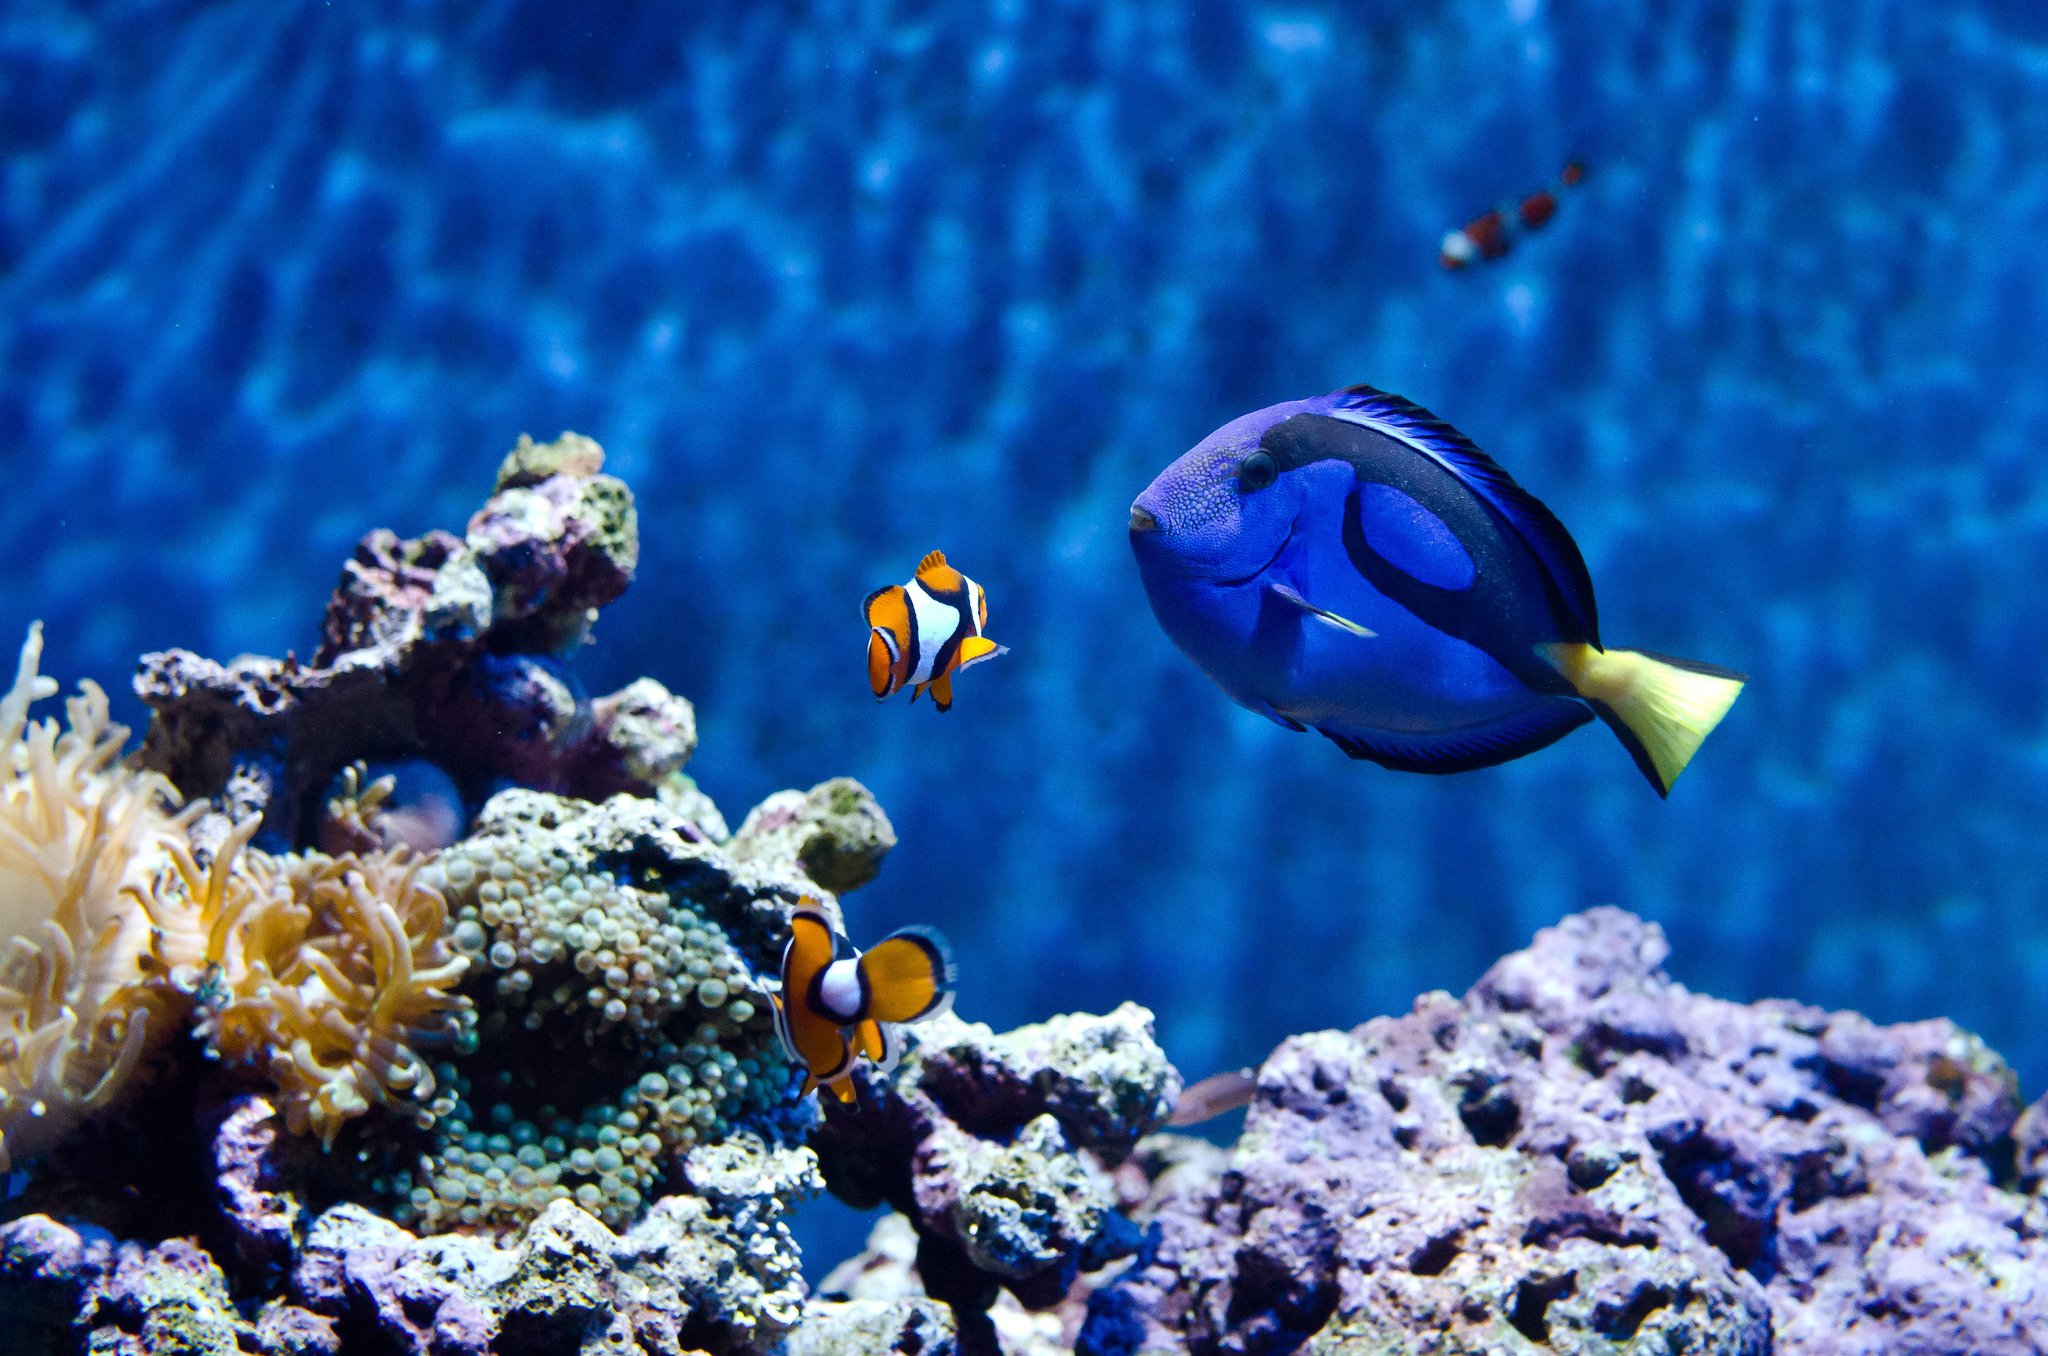 Tropical marine life is probably best left in its native habitat. Image by  looyaa .